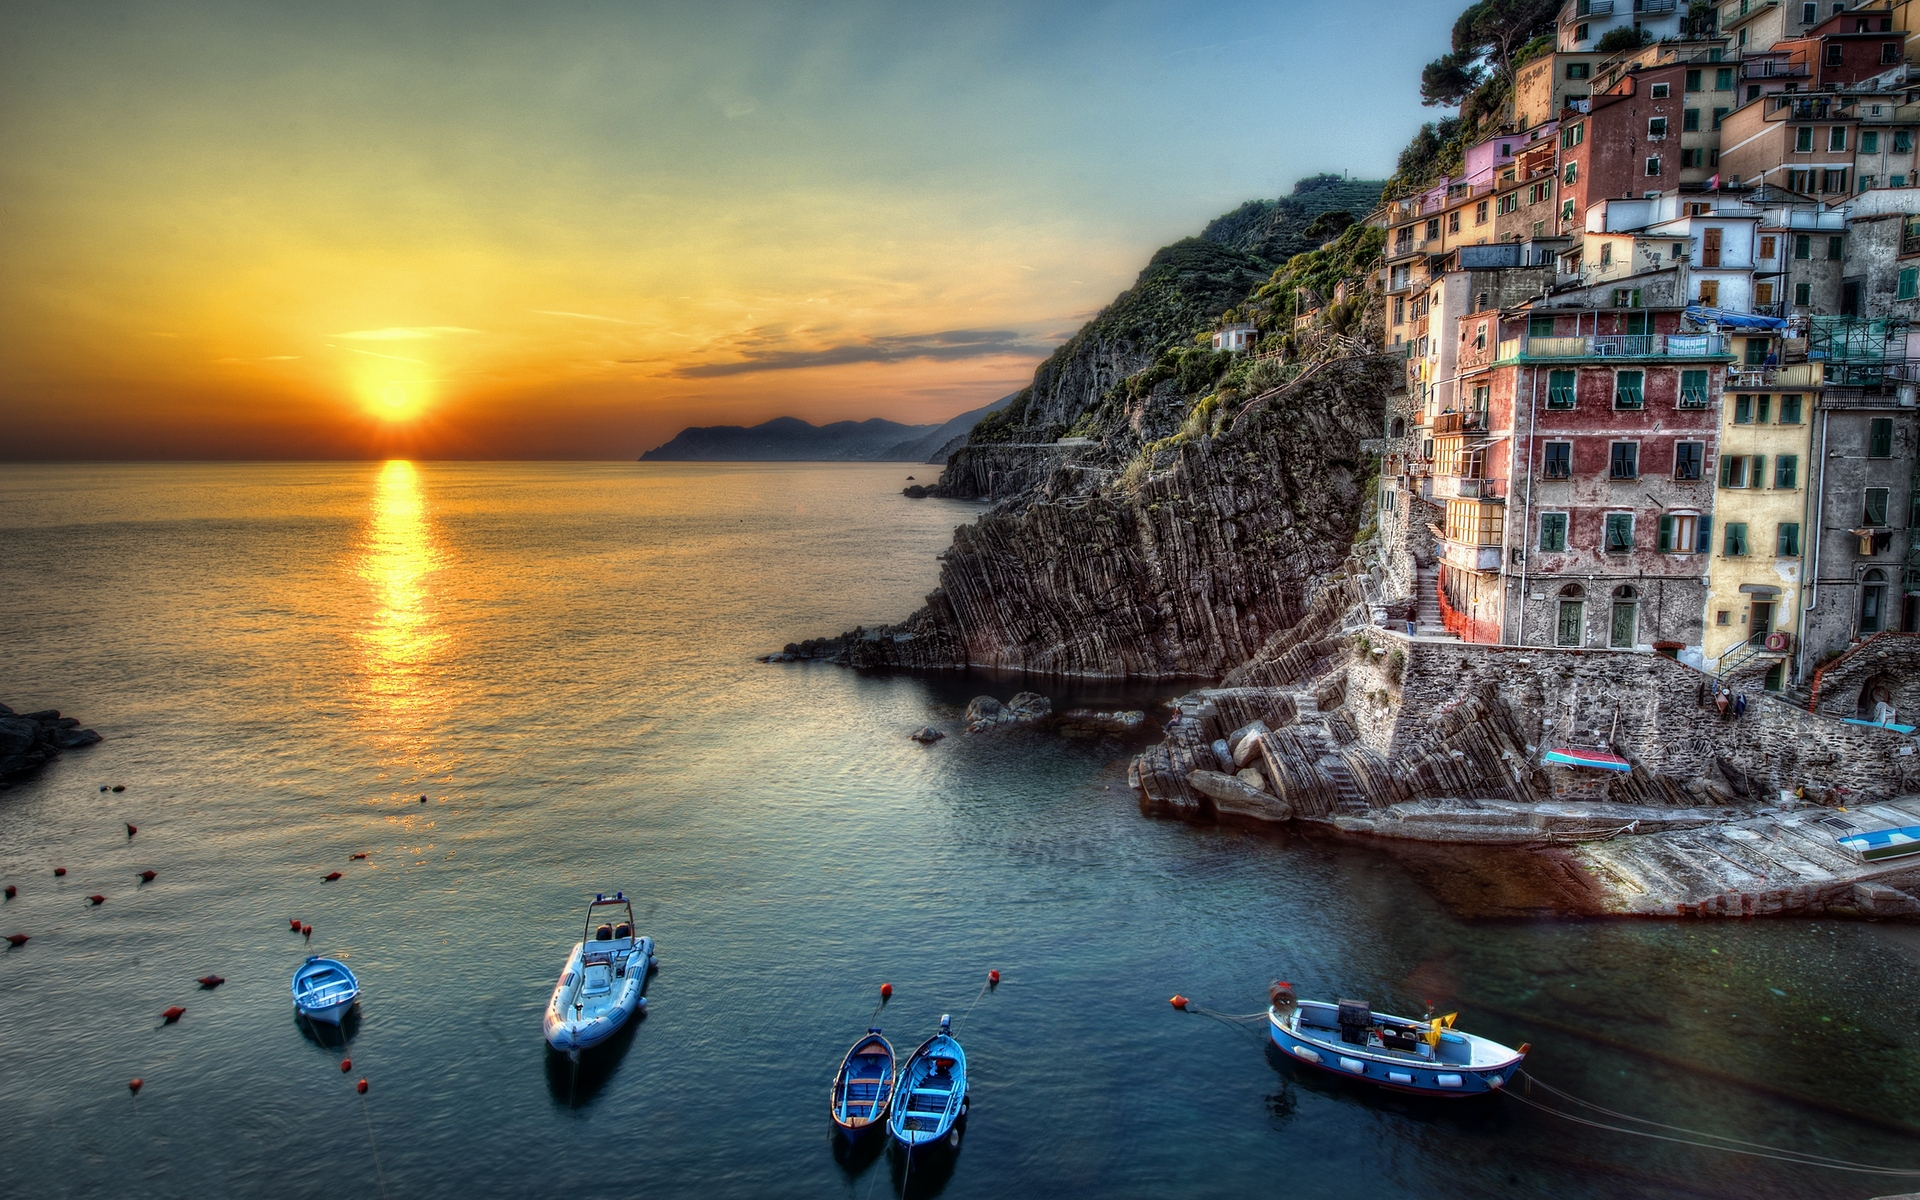 Wallpapers Of Italy Beautiful Sunset On Italy Beach Wallpaper Wallpaper Wallpaperlepi